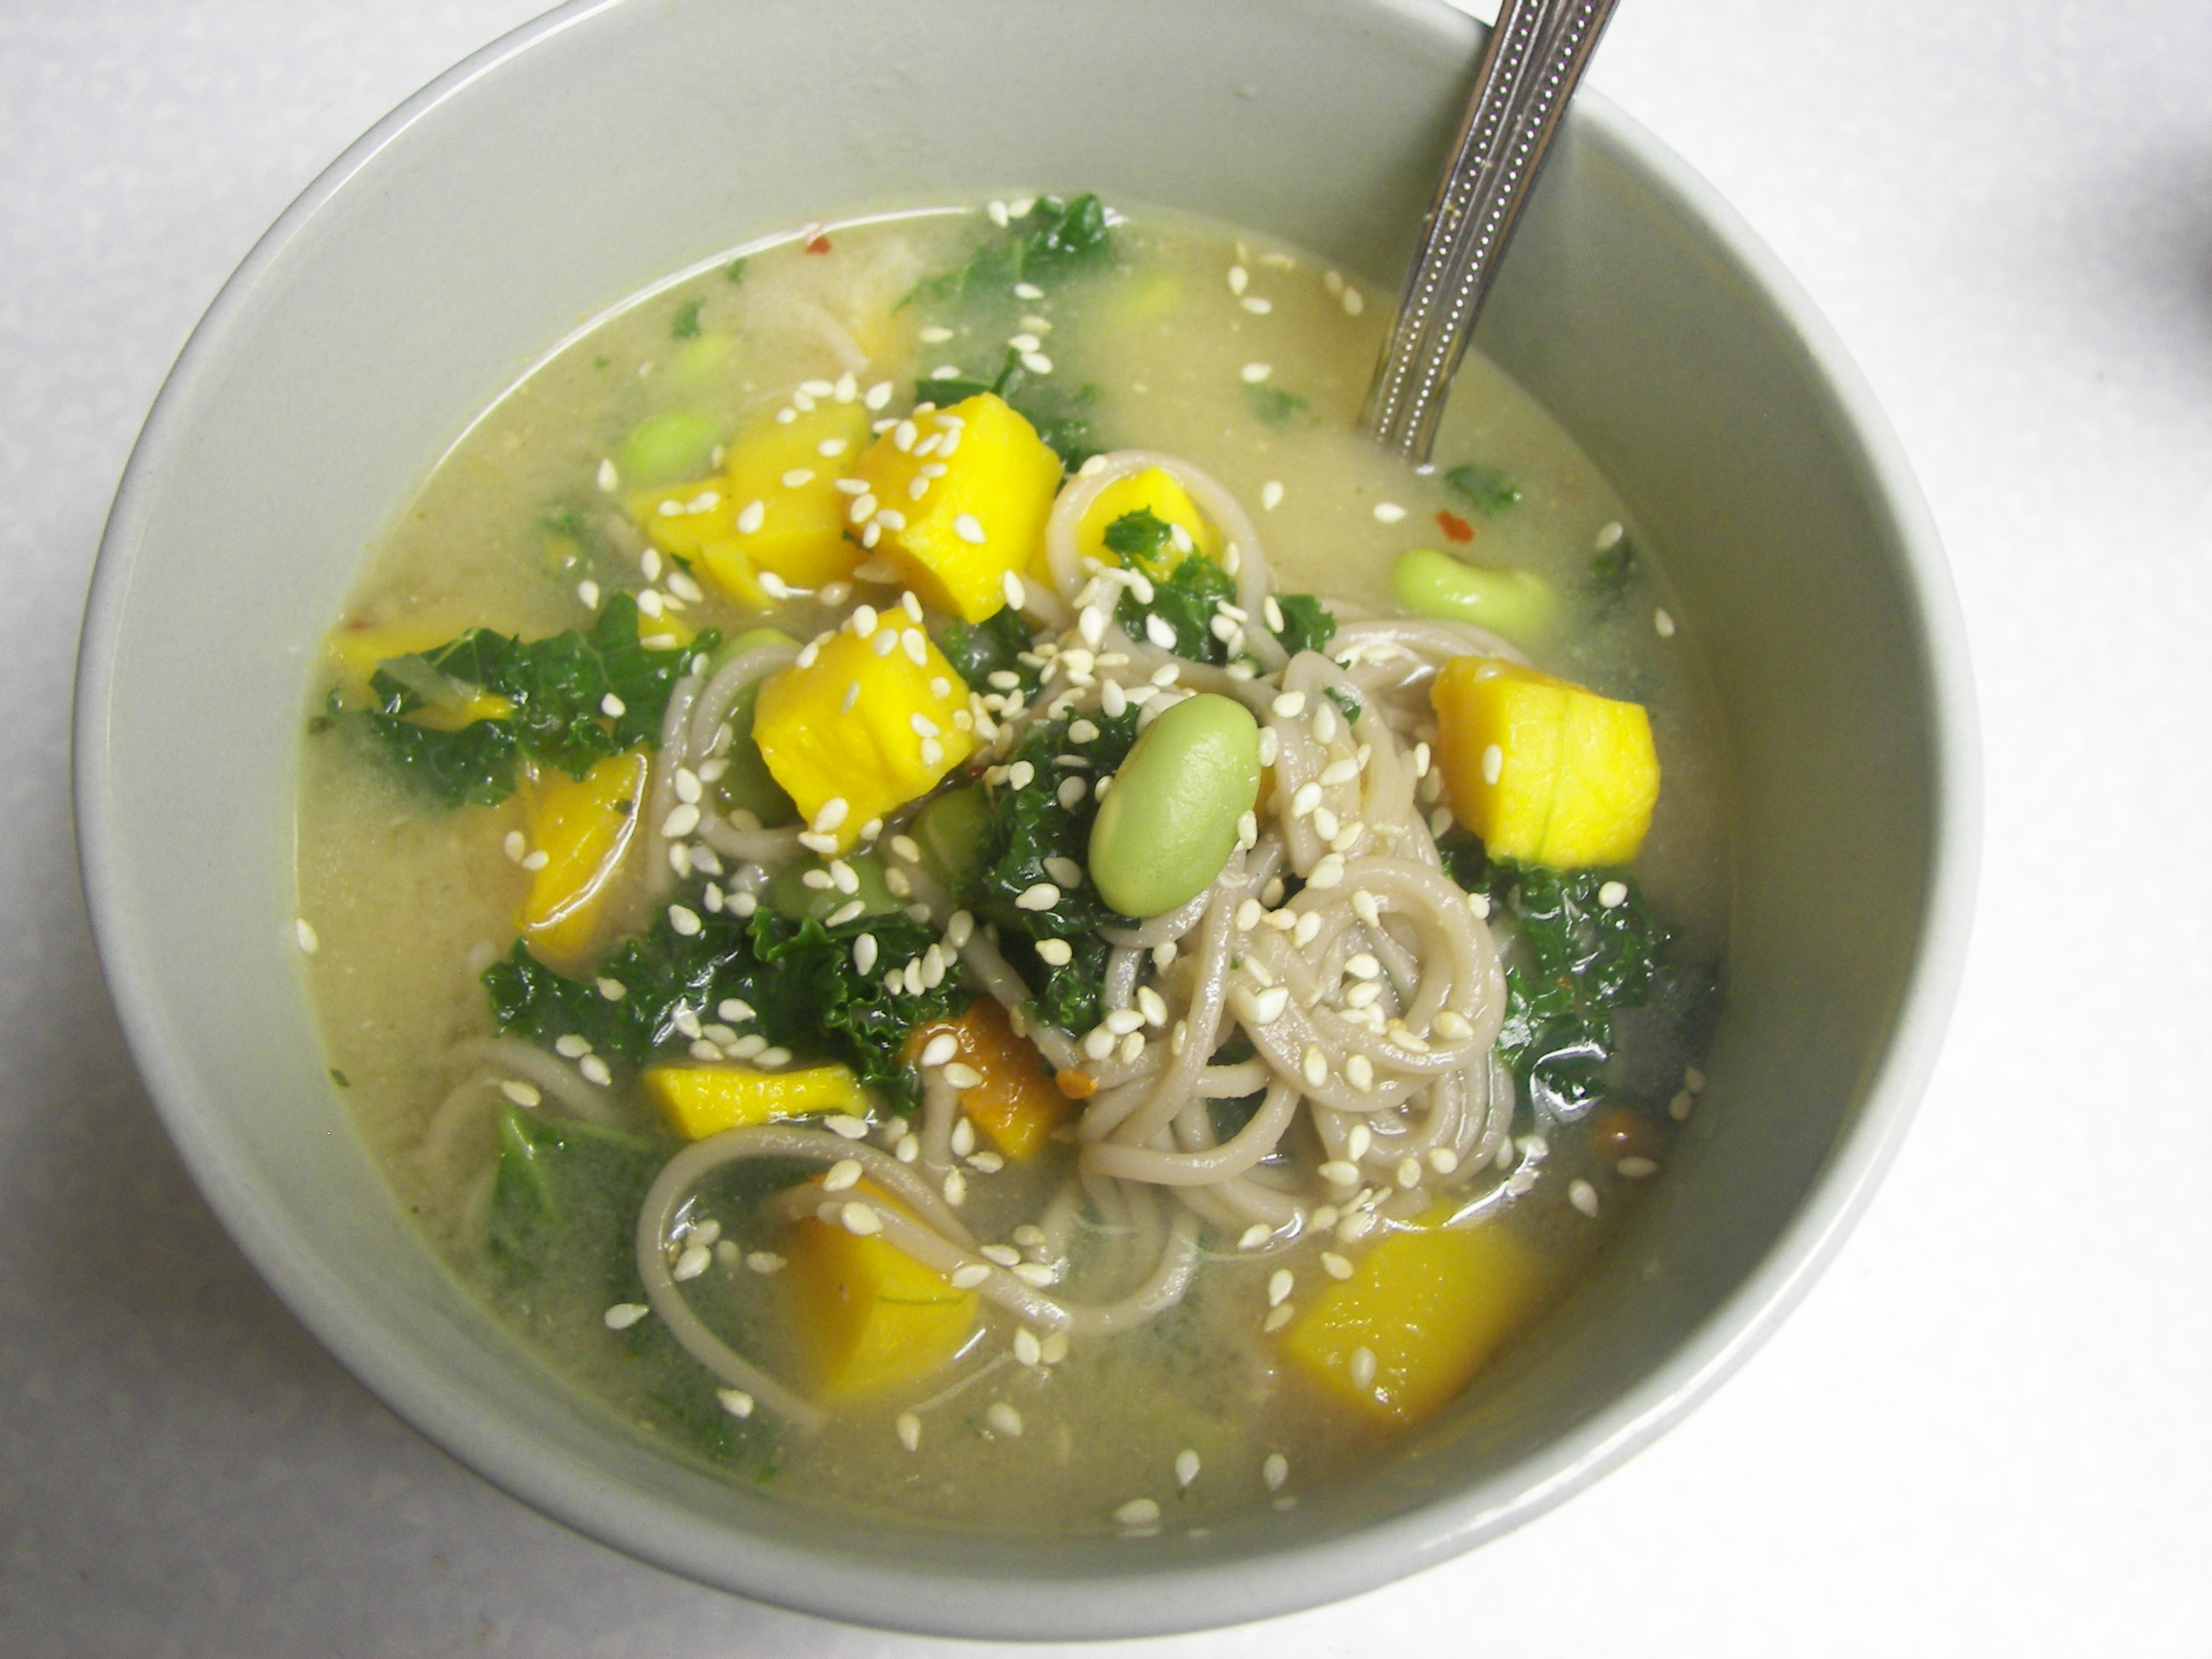 ... Squash Miso Noodle Soup with Kale and Edamame - Whole Hope Wellness